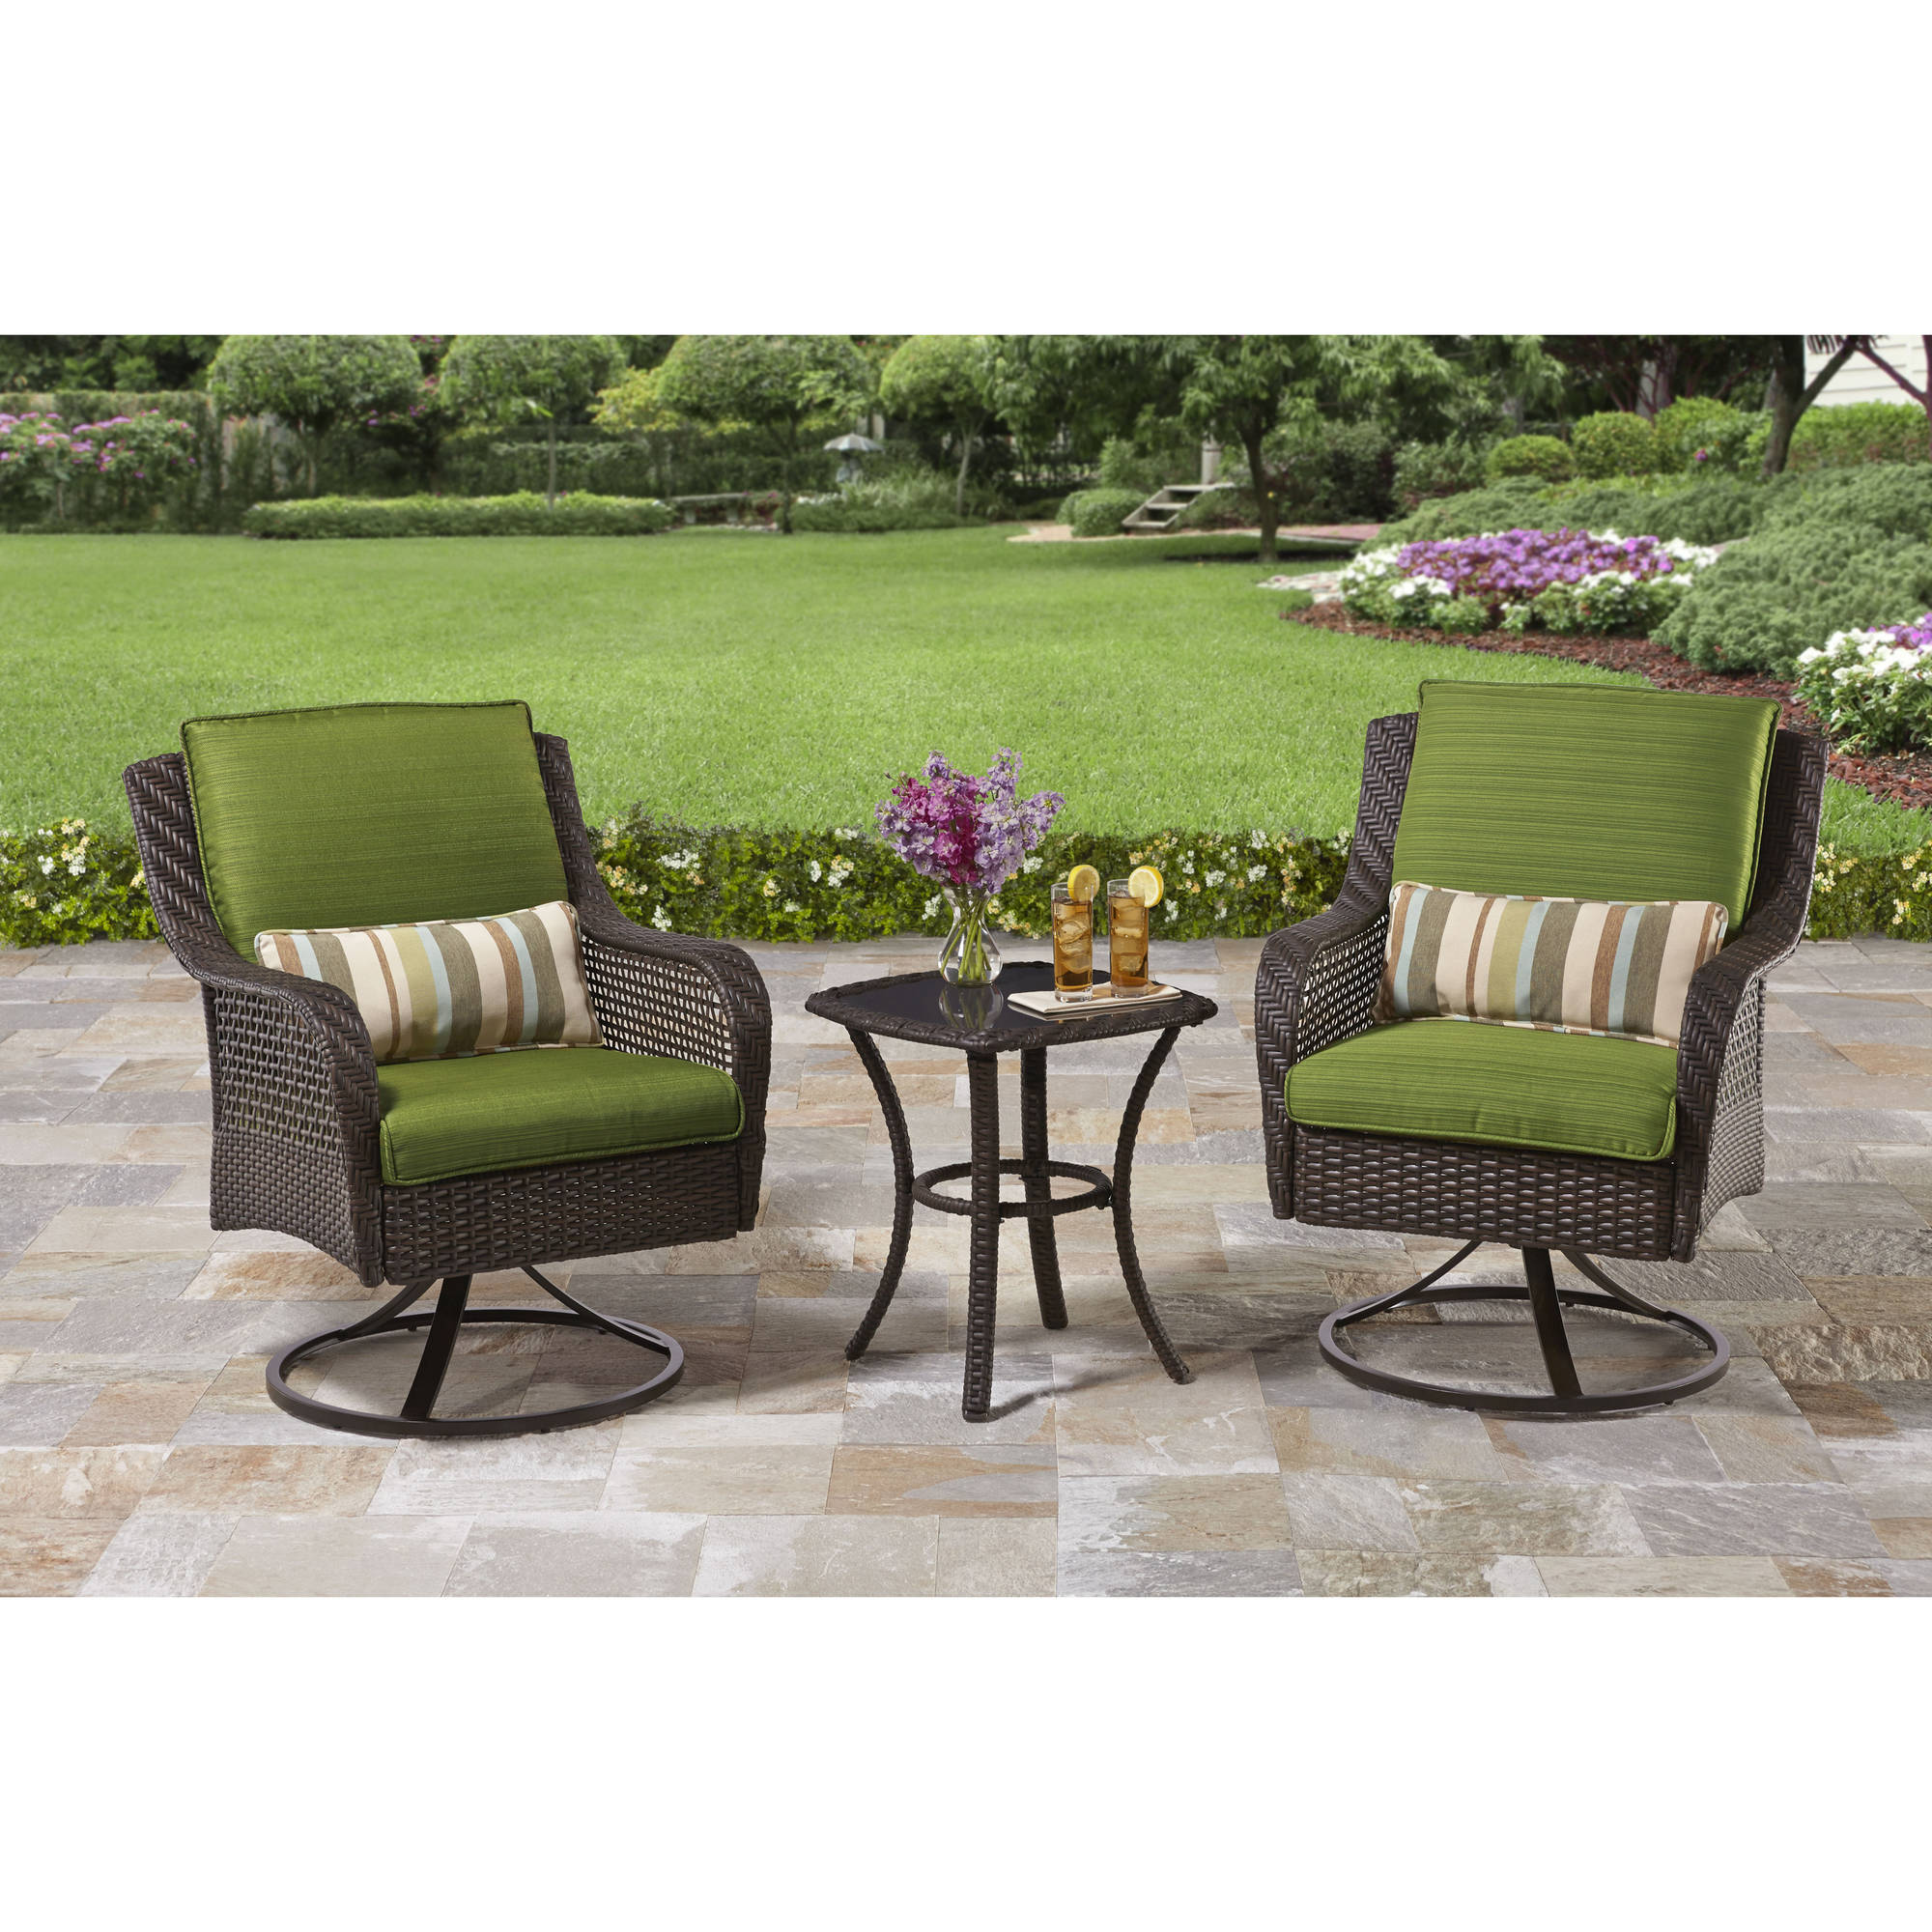 Better Homes and Gardens Amelia Cove 3 Piece Outdoor Bistro Set